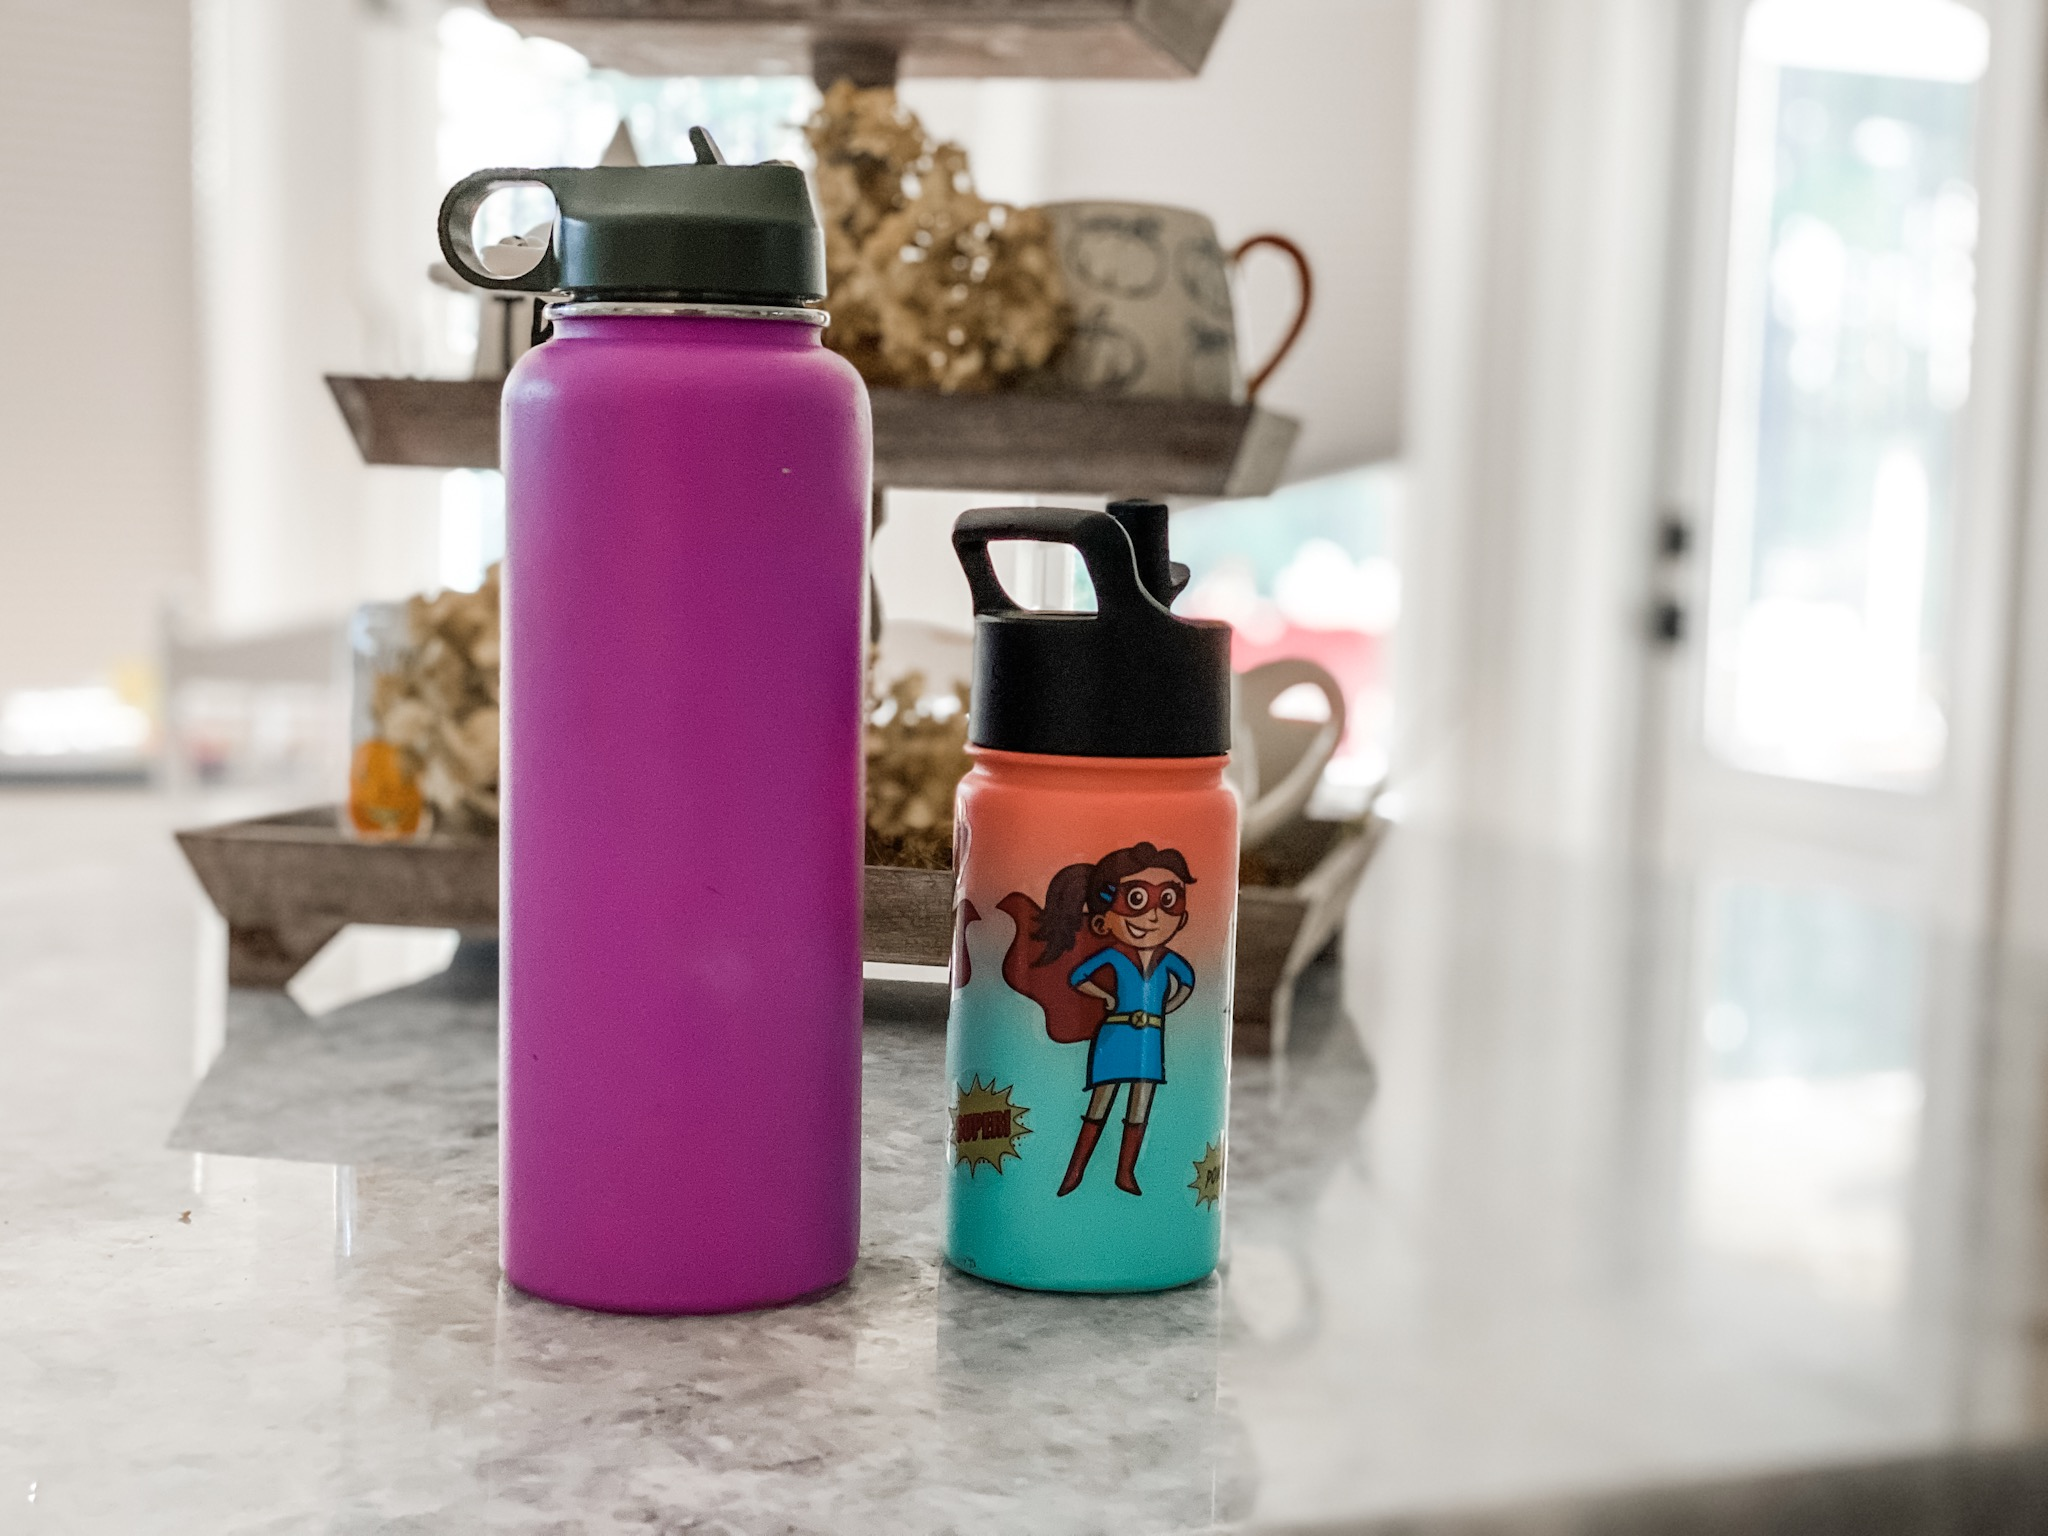 A large water bottle beside a child water bottle on a counter.